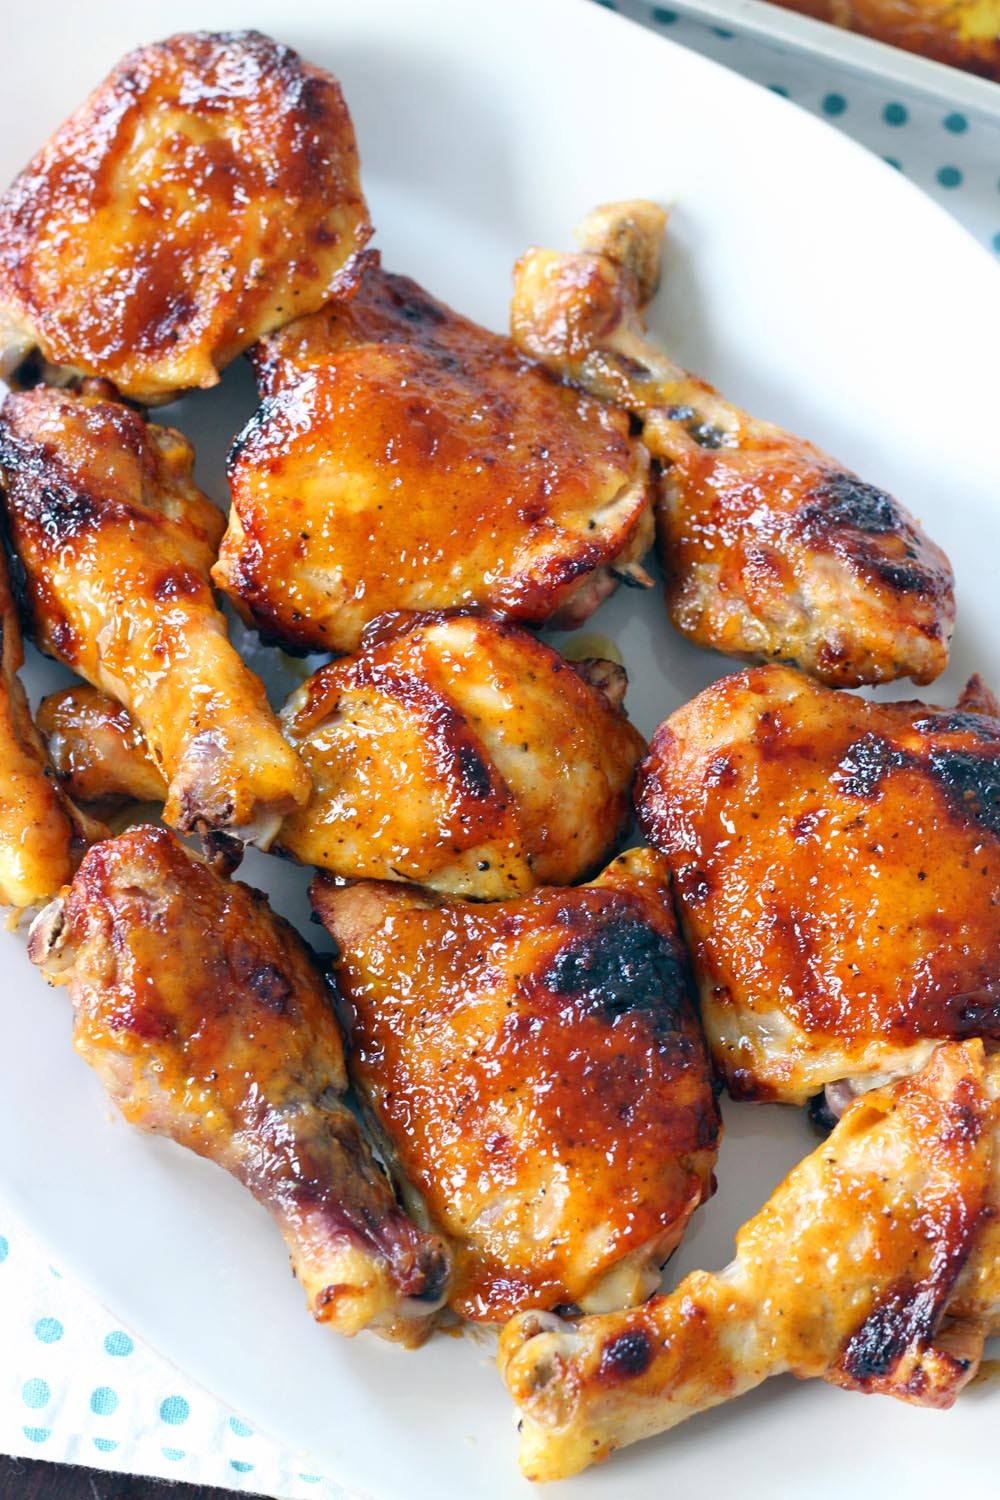 Chicken Recipes Baked  Two Ingre nt Crispy Oven Baked BBQ Chicken